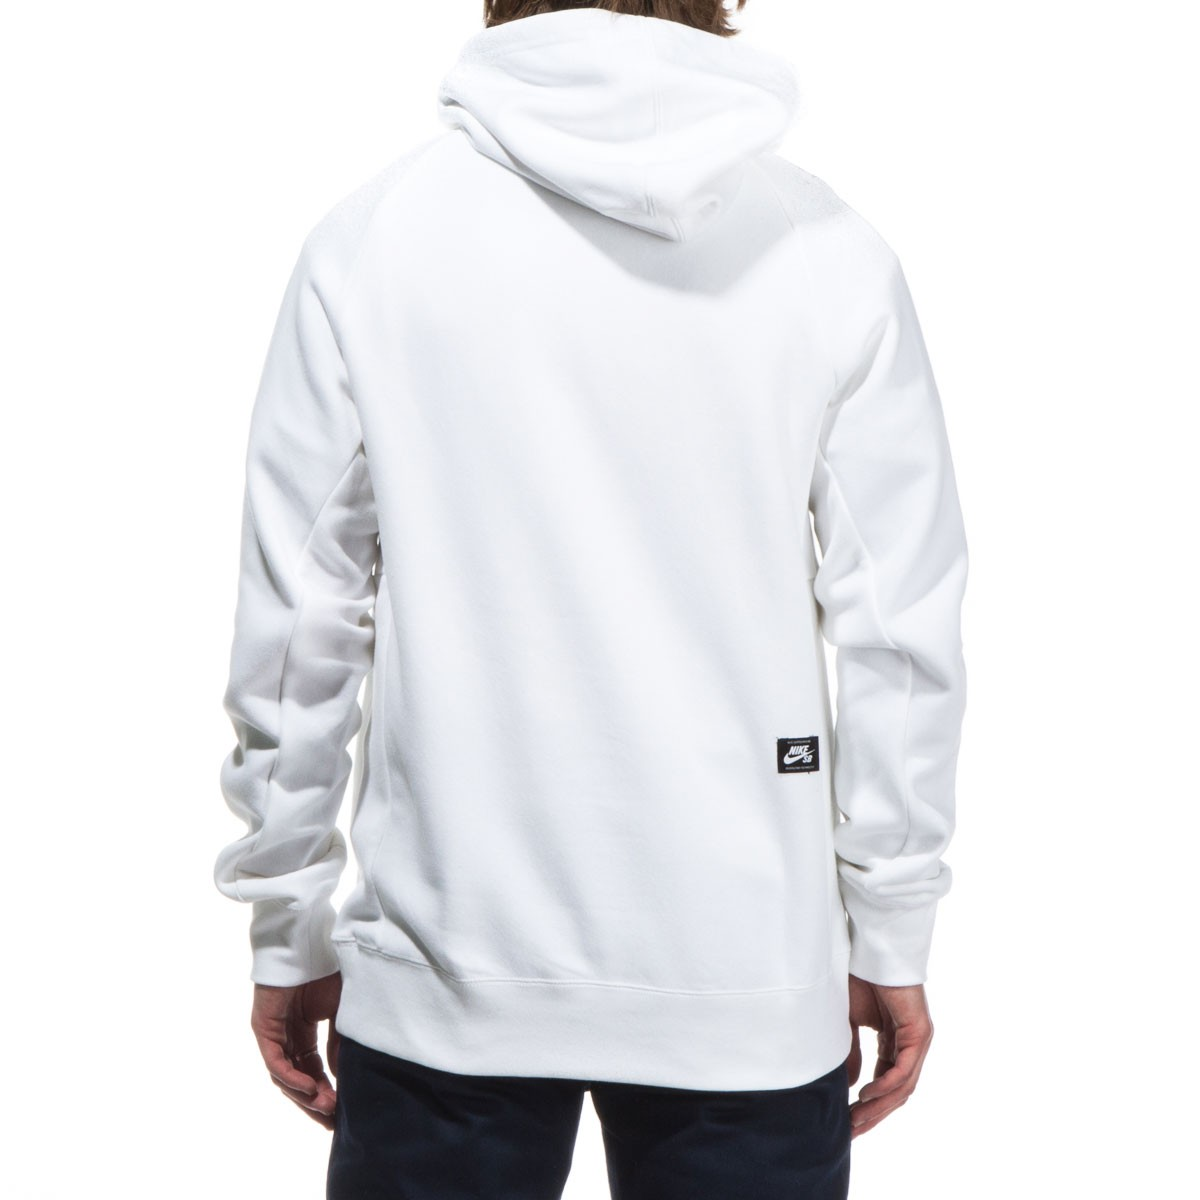 SB Icon Cherry Blossom Pullover Hoodie - White/Black